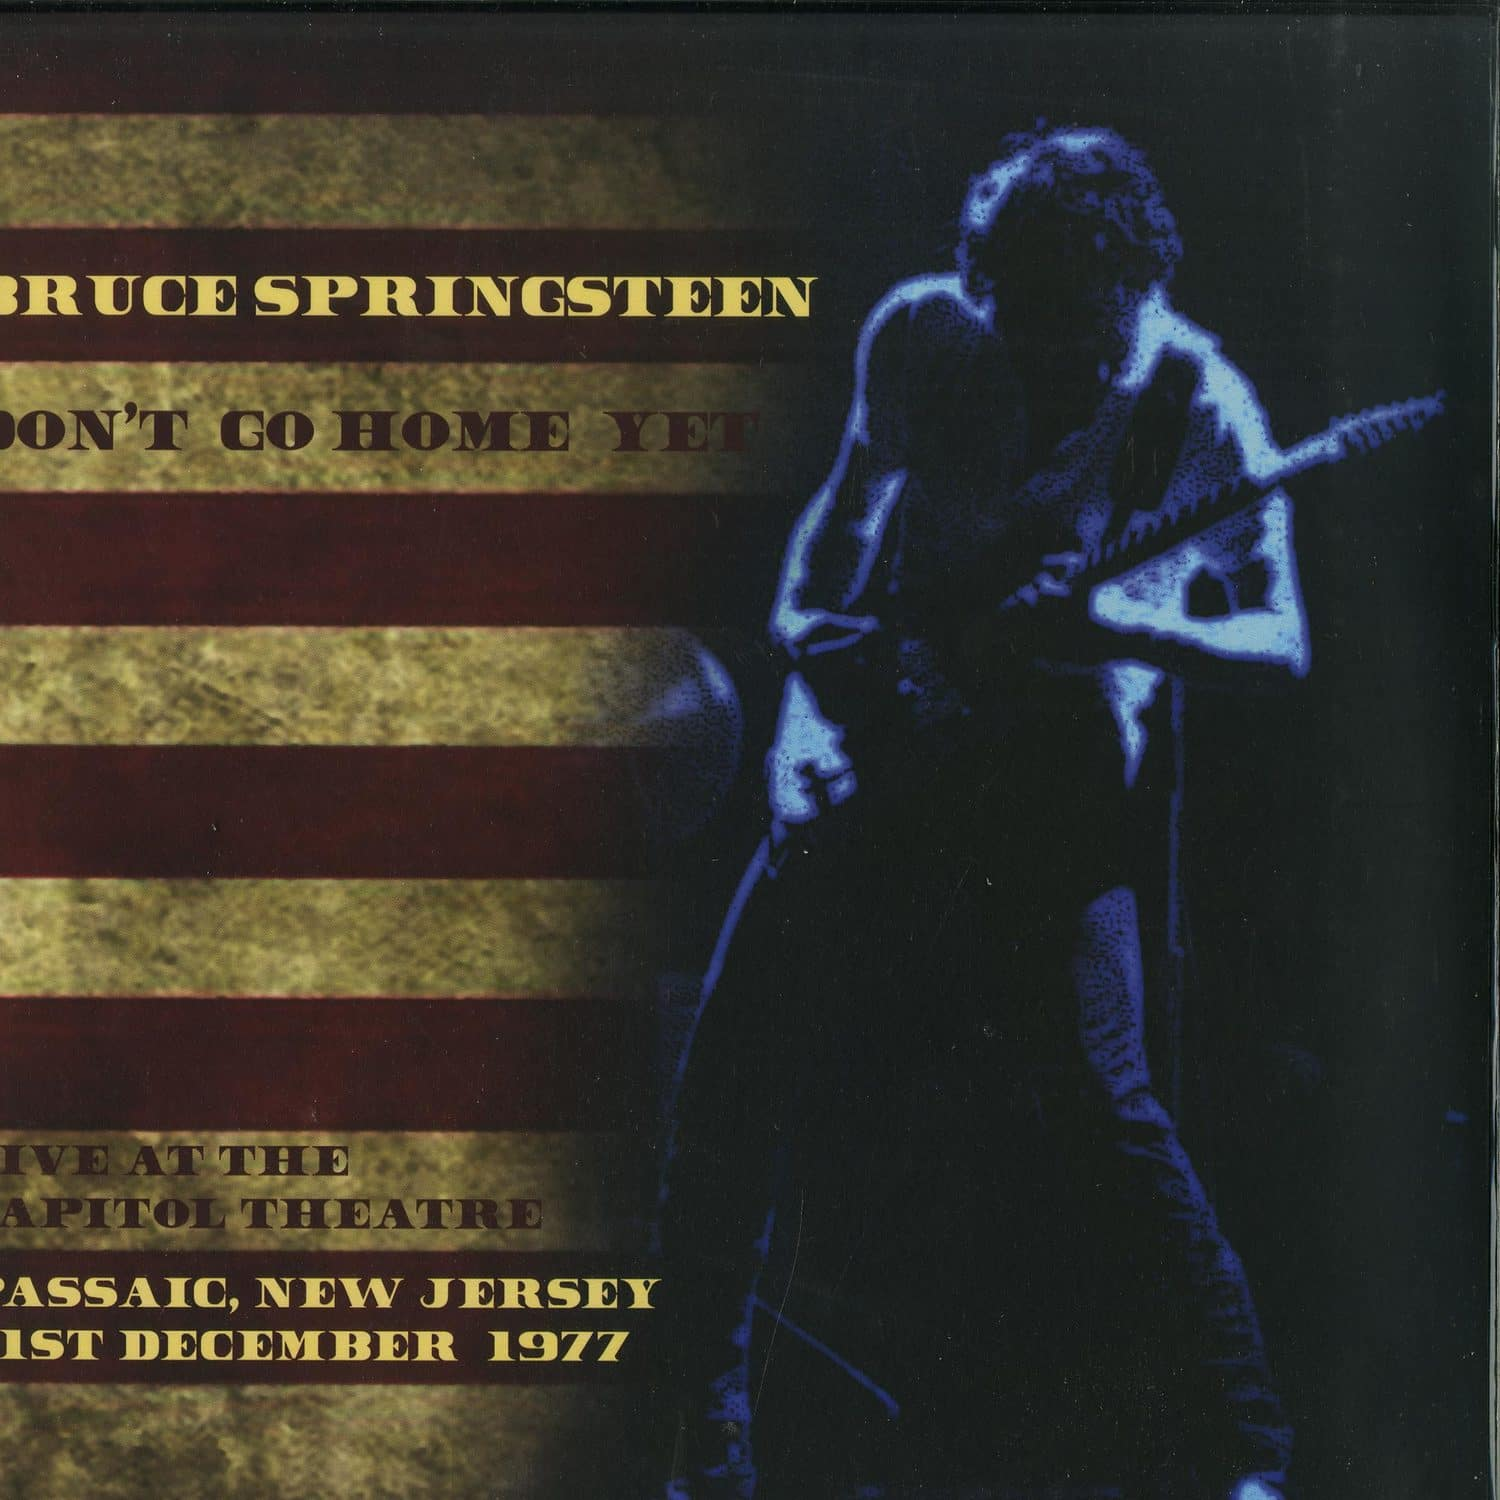 Bruce Springsteen - DONT GO HOME YET